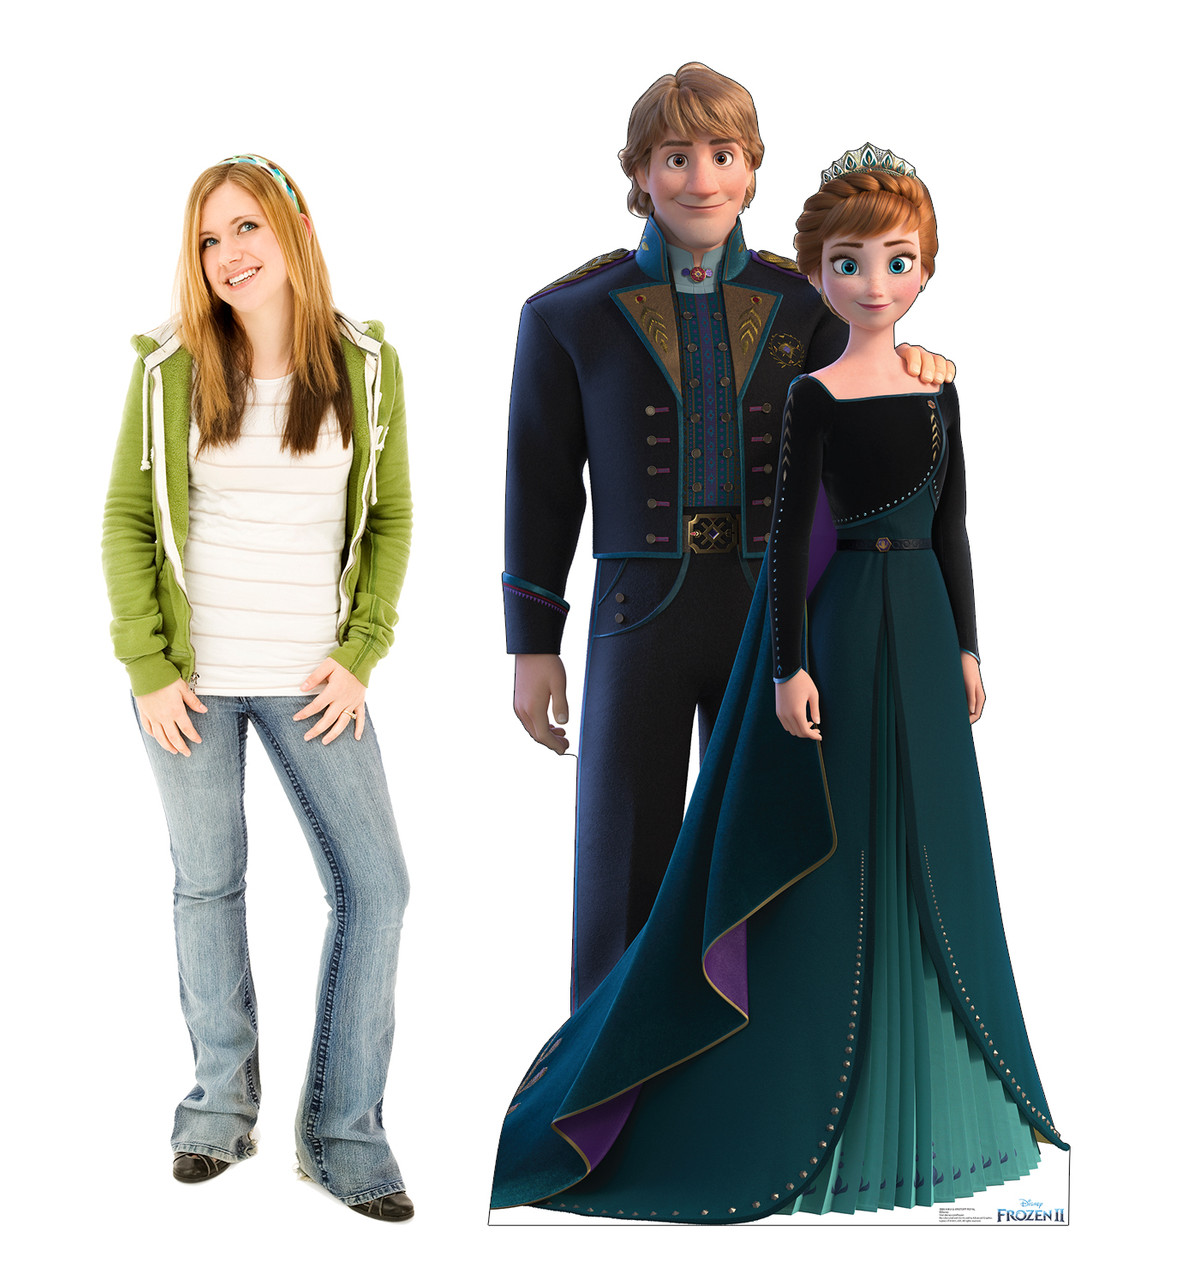 Life-size cardboard standee of Anna and Kristoff from Disney's Frozen 2 with model.